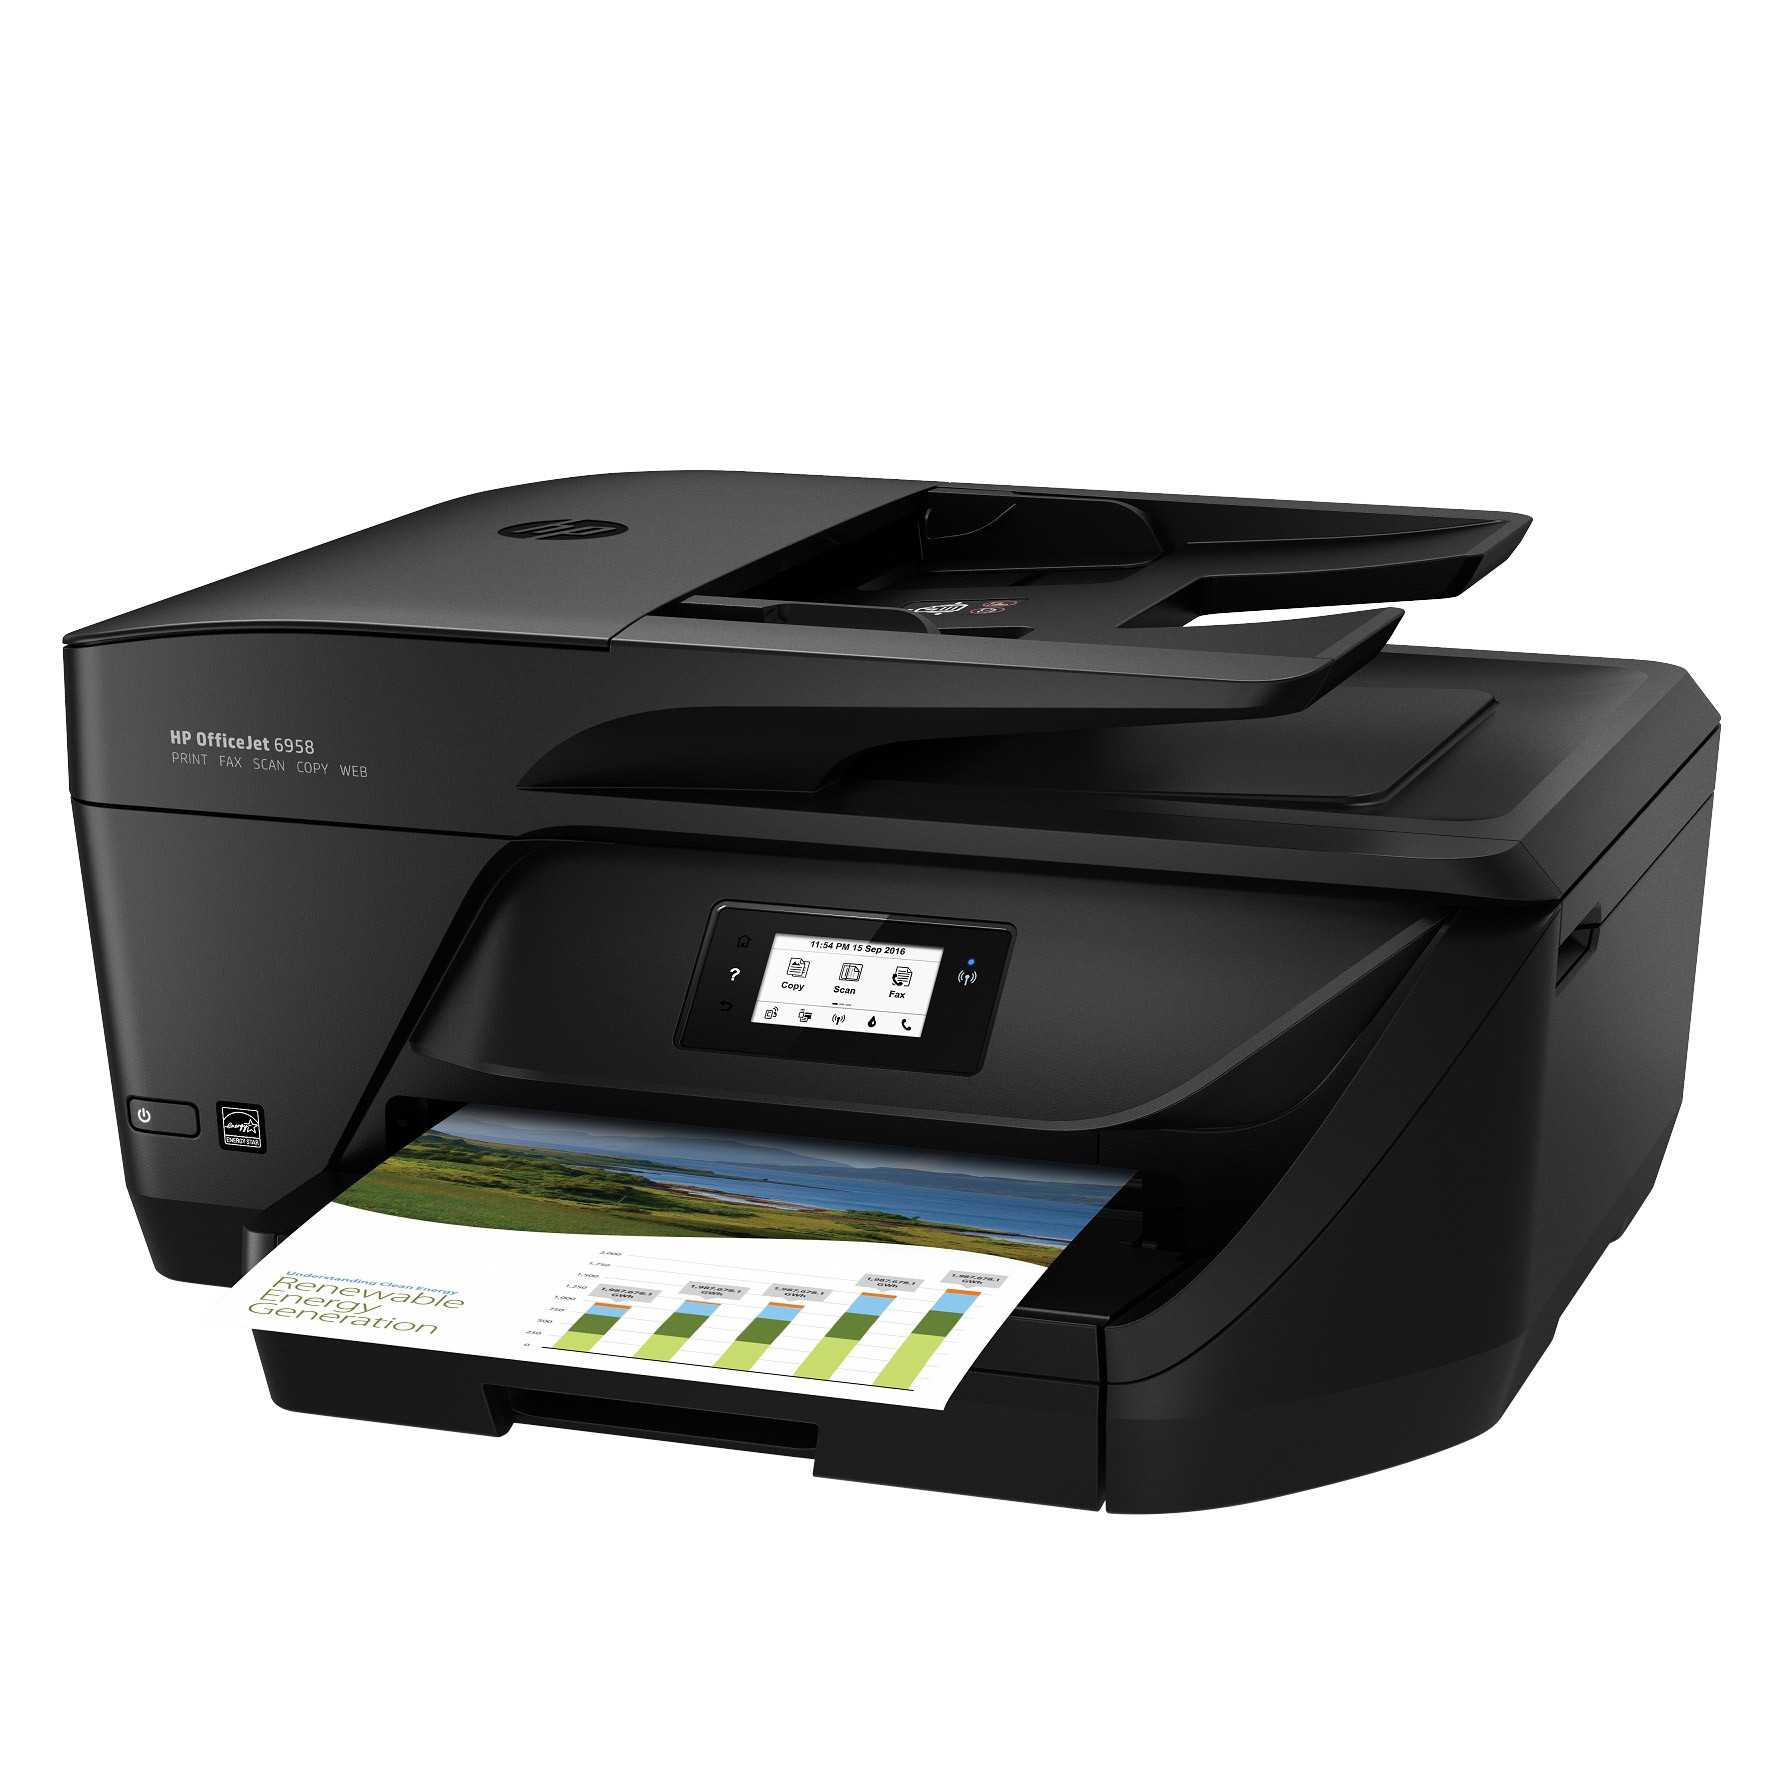 HP Officejet Pro 6958 All-in-One Color Inkjet Printer by HP